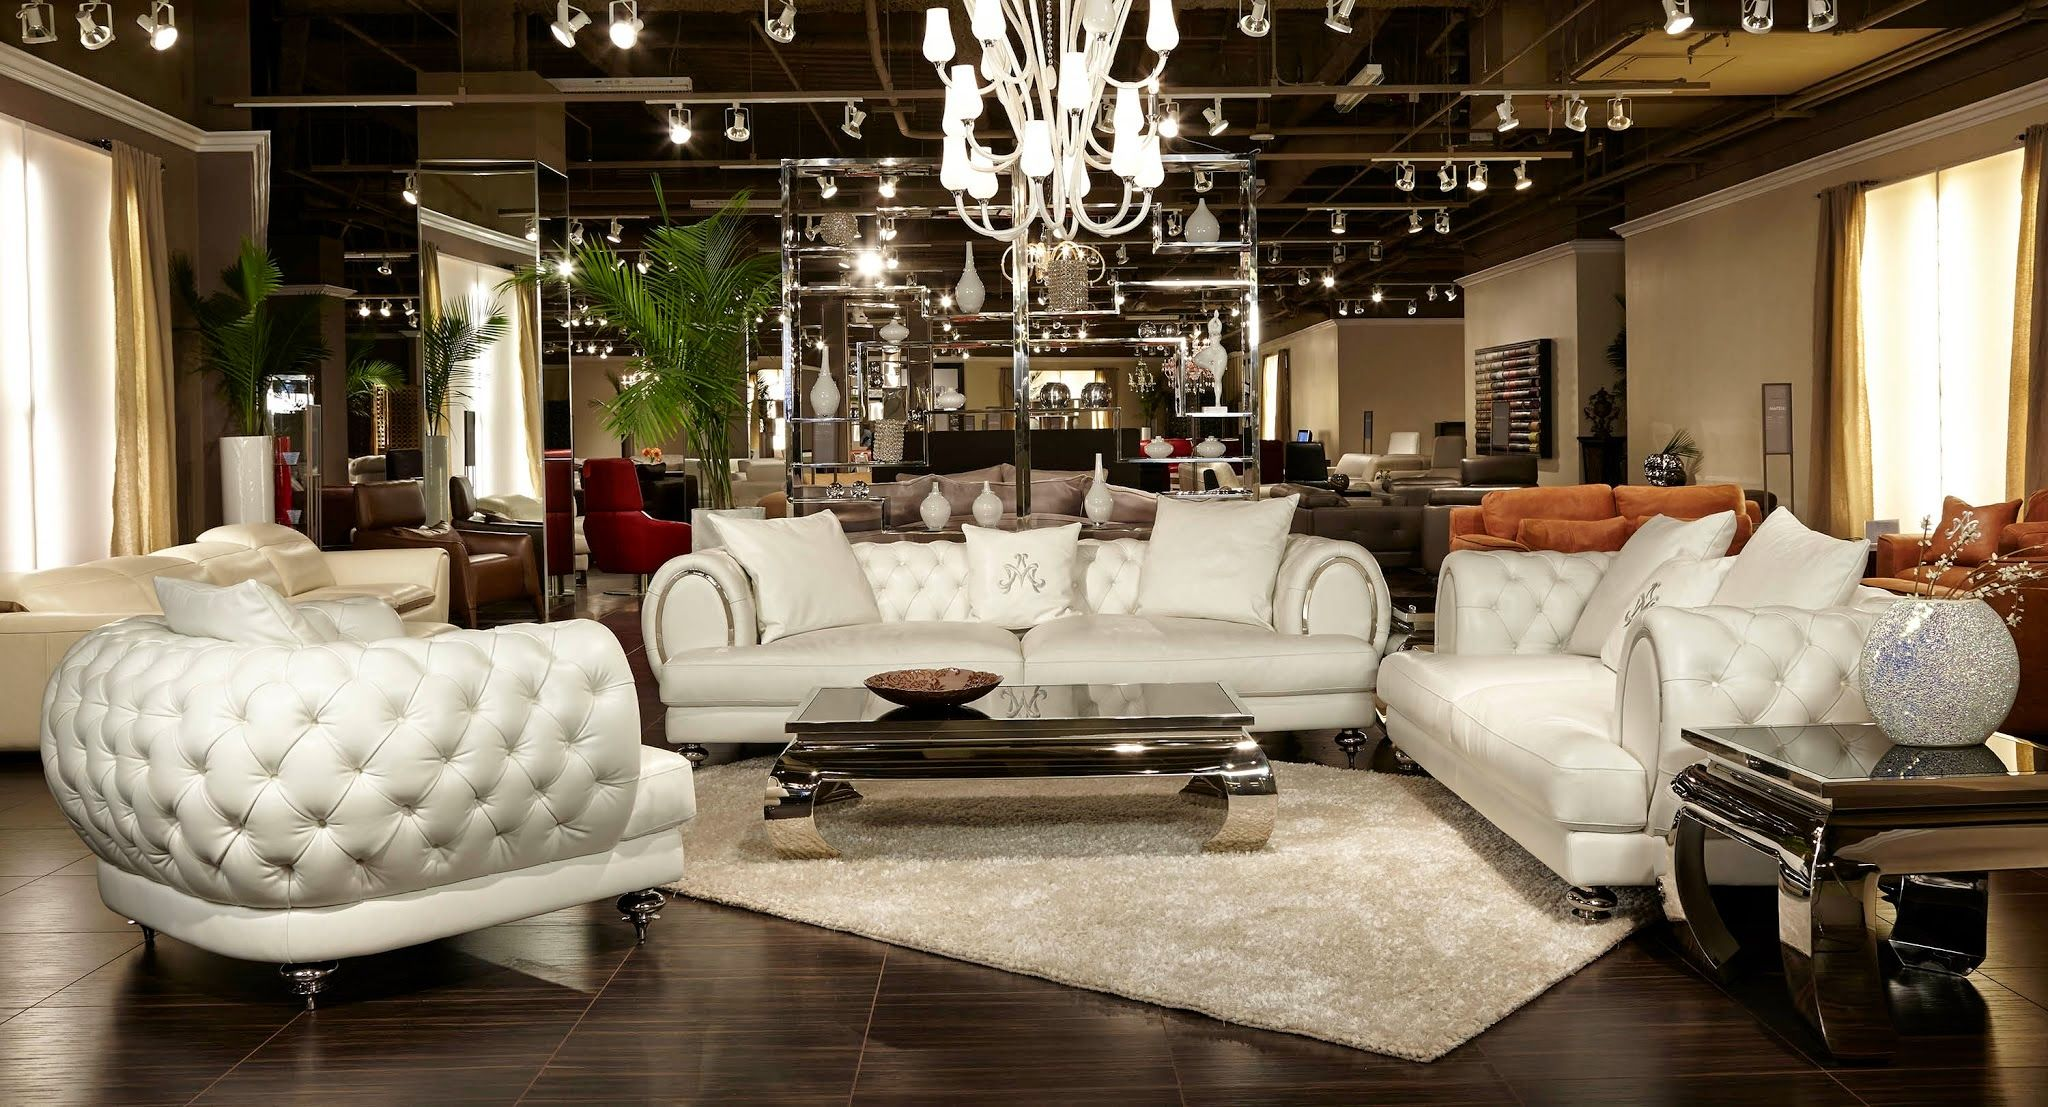 Fabulous Formal Living Room Furniture Design In Luxury